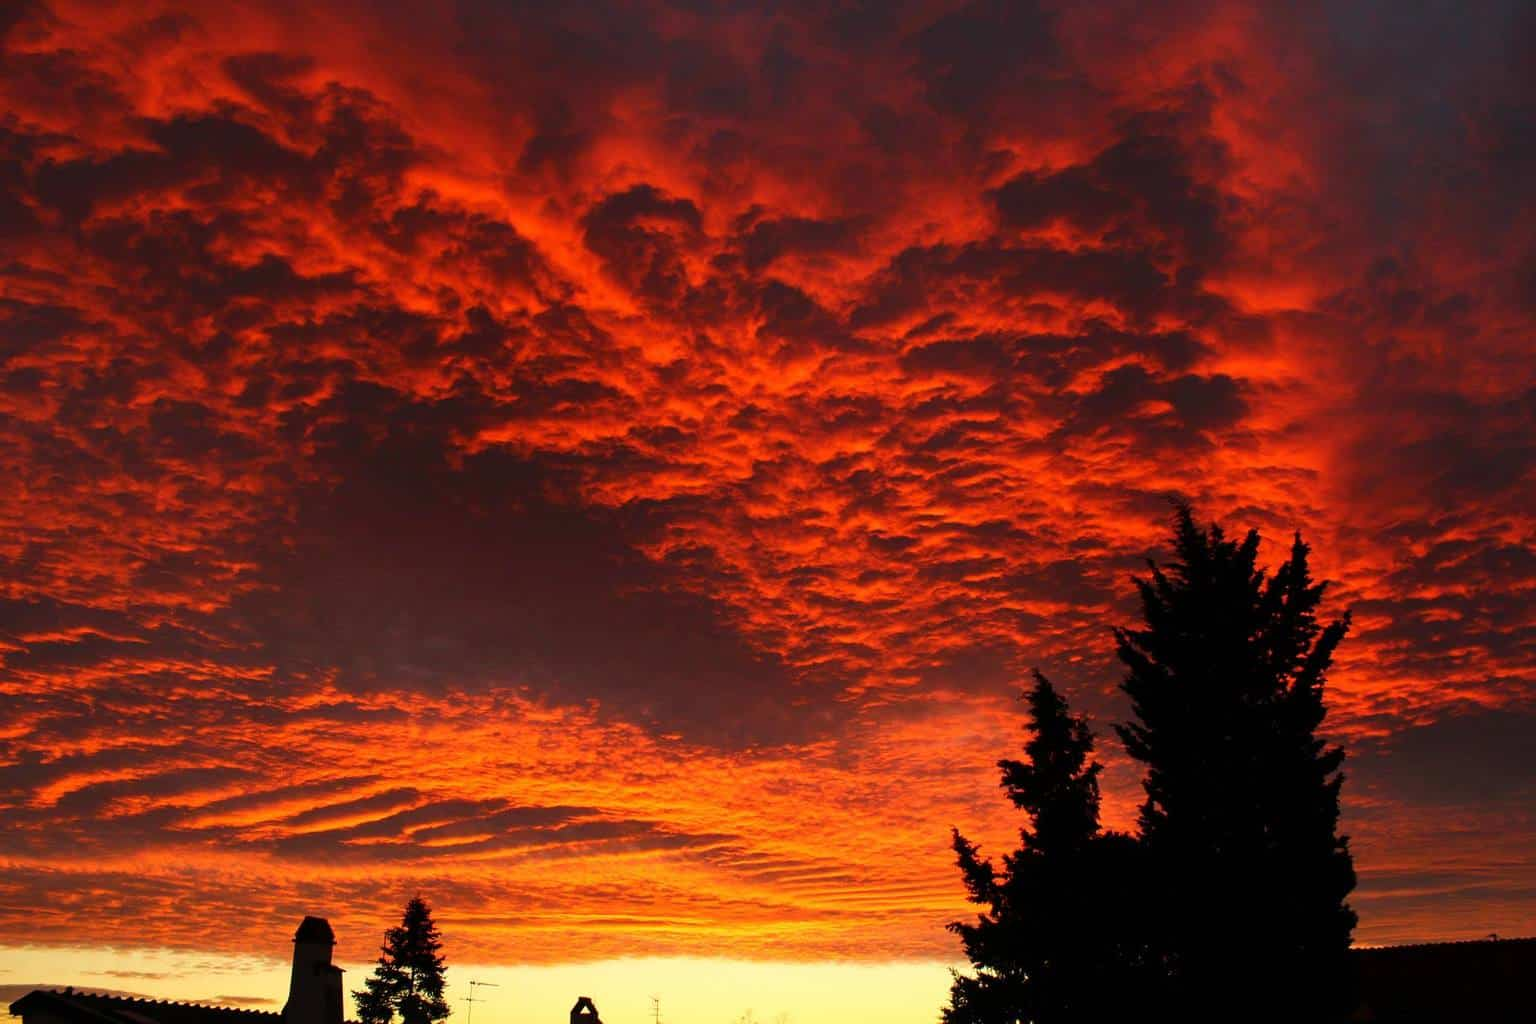 '' Best sunset ever '' My photo of an incredible sunset occurs in tuscany on december 2011.